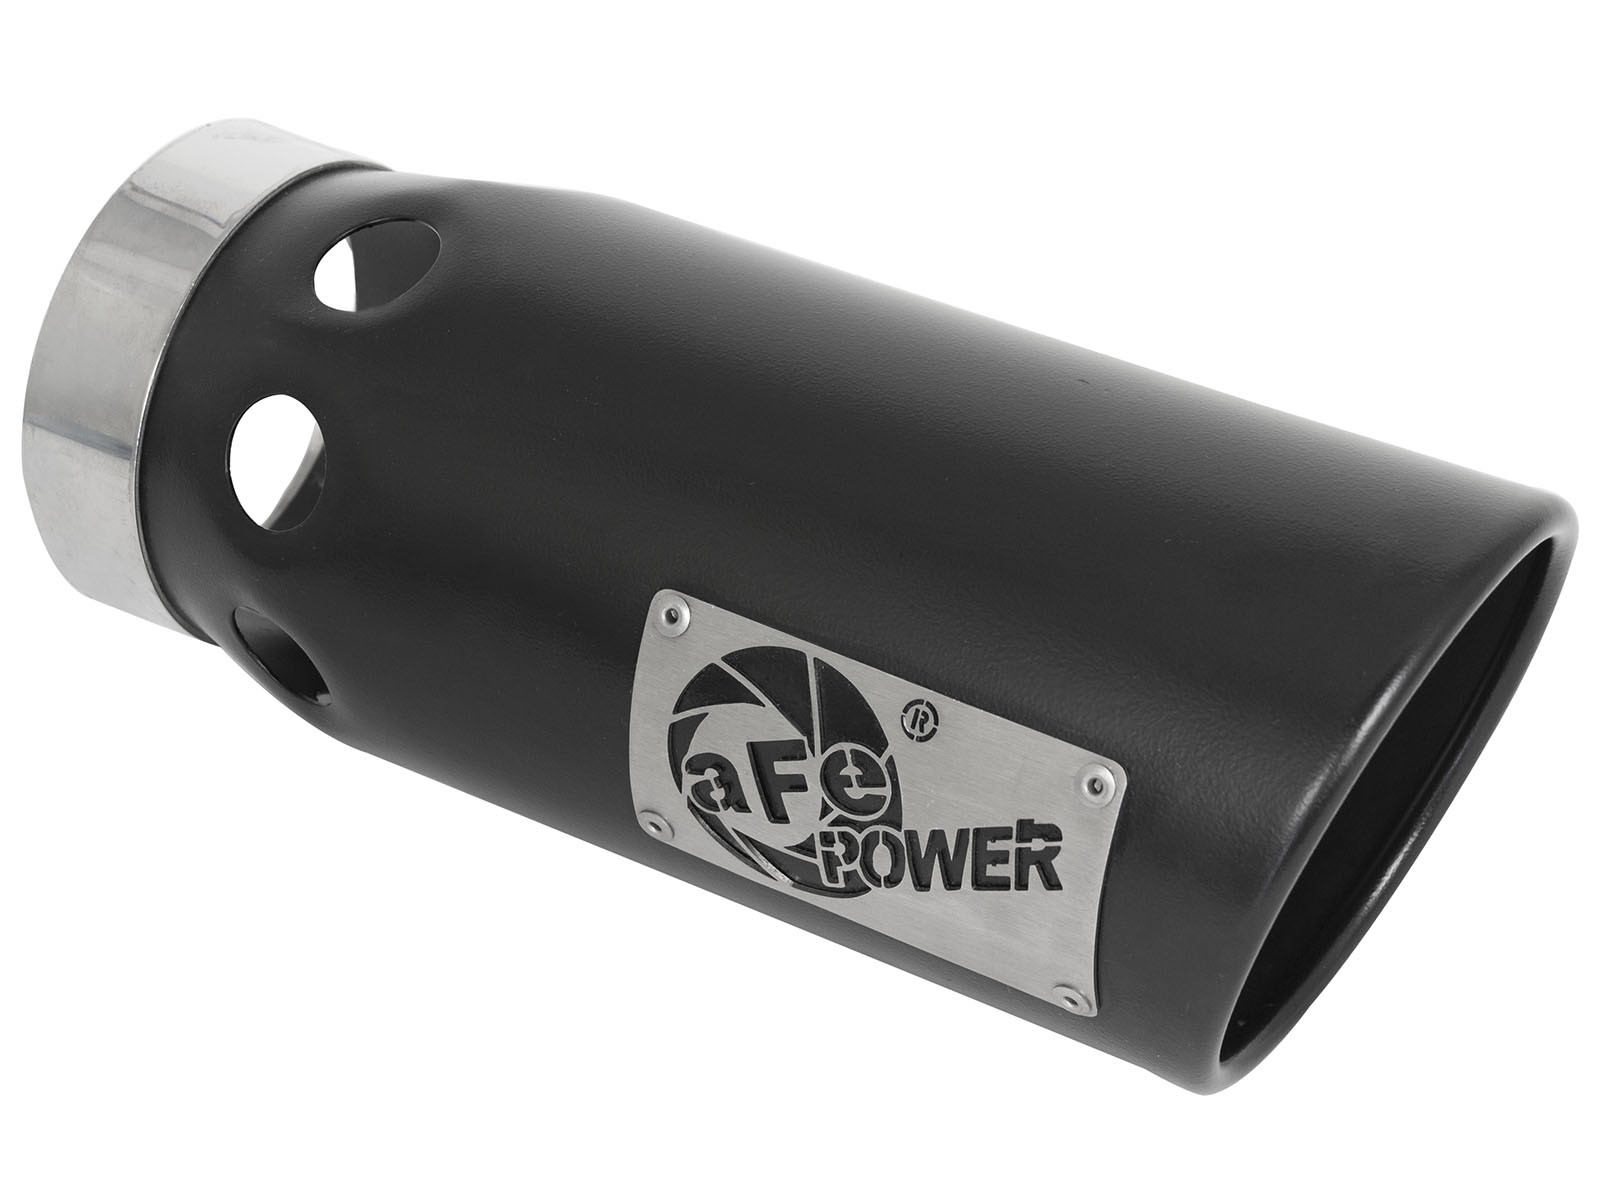 "aFe POWER 49T50601-B161 MACH Force-Xp 5"" 304 Stainless Steel Intercooled Exhaust Tip"